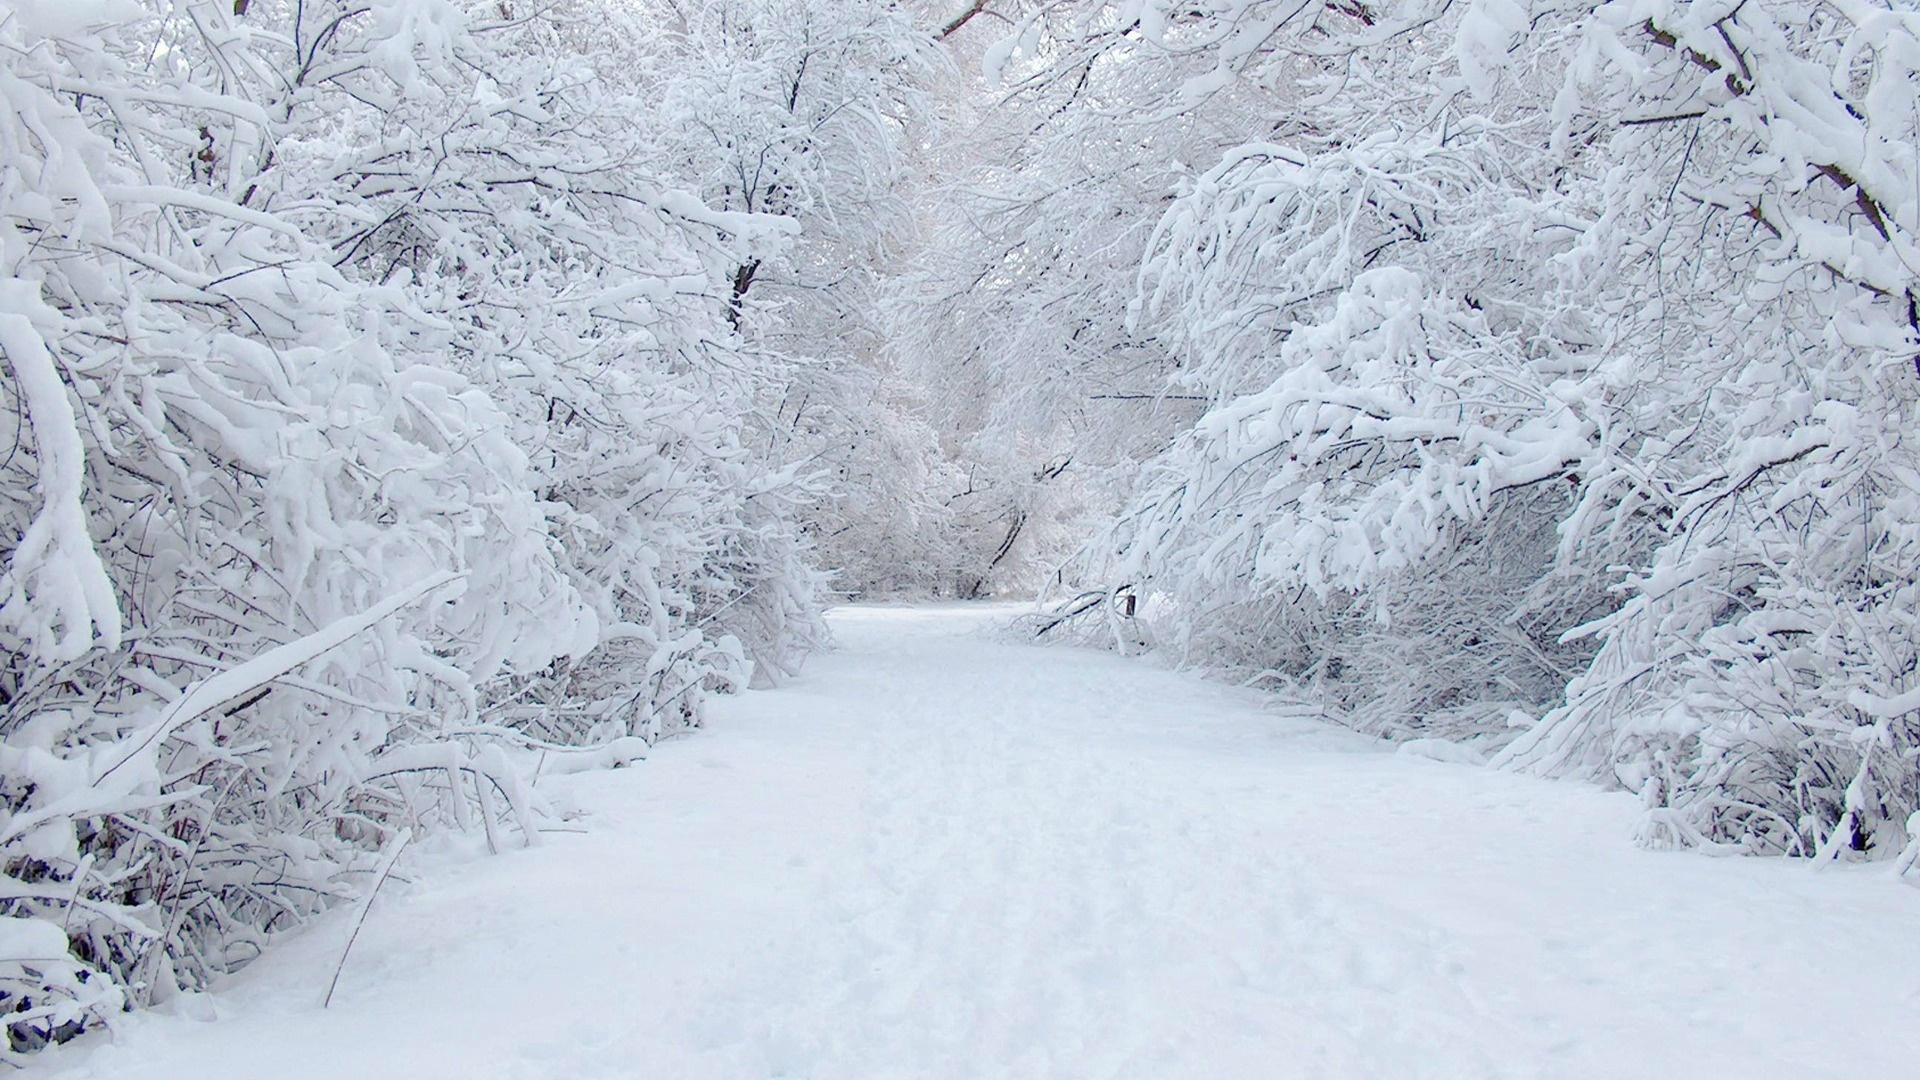 10 New Snow Wallpaper Hd Widescreen FULL HD 1080p For PC ...